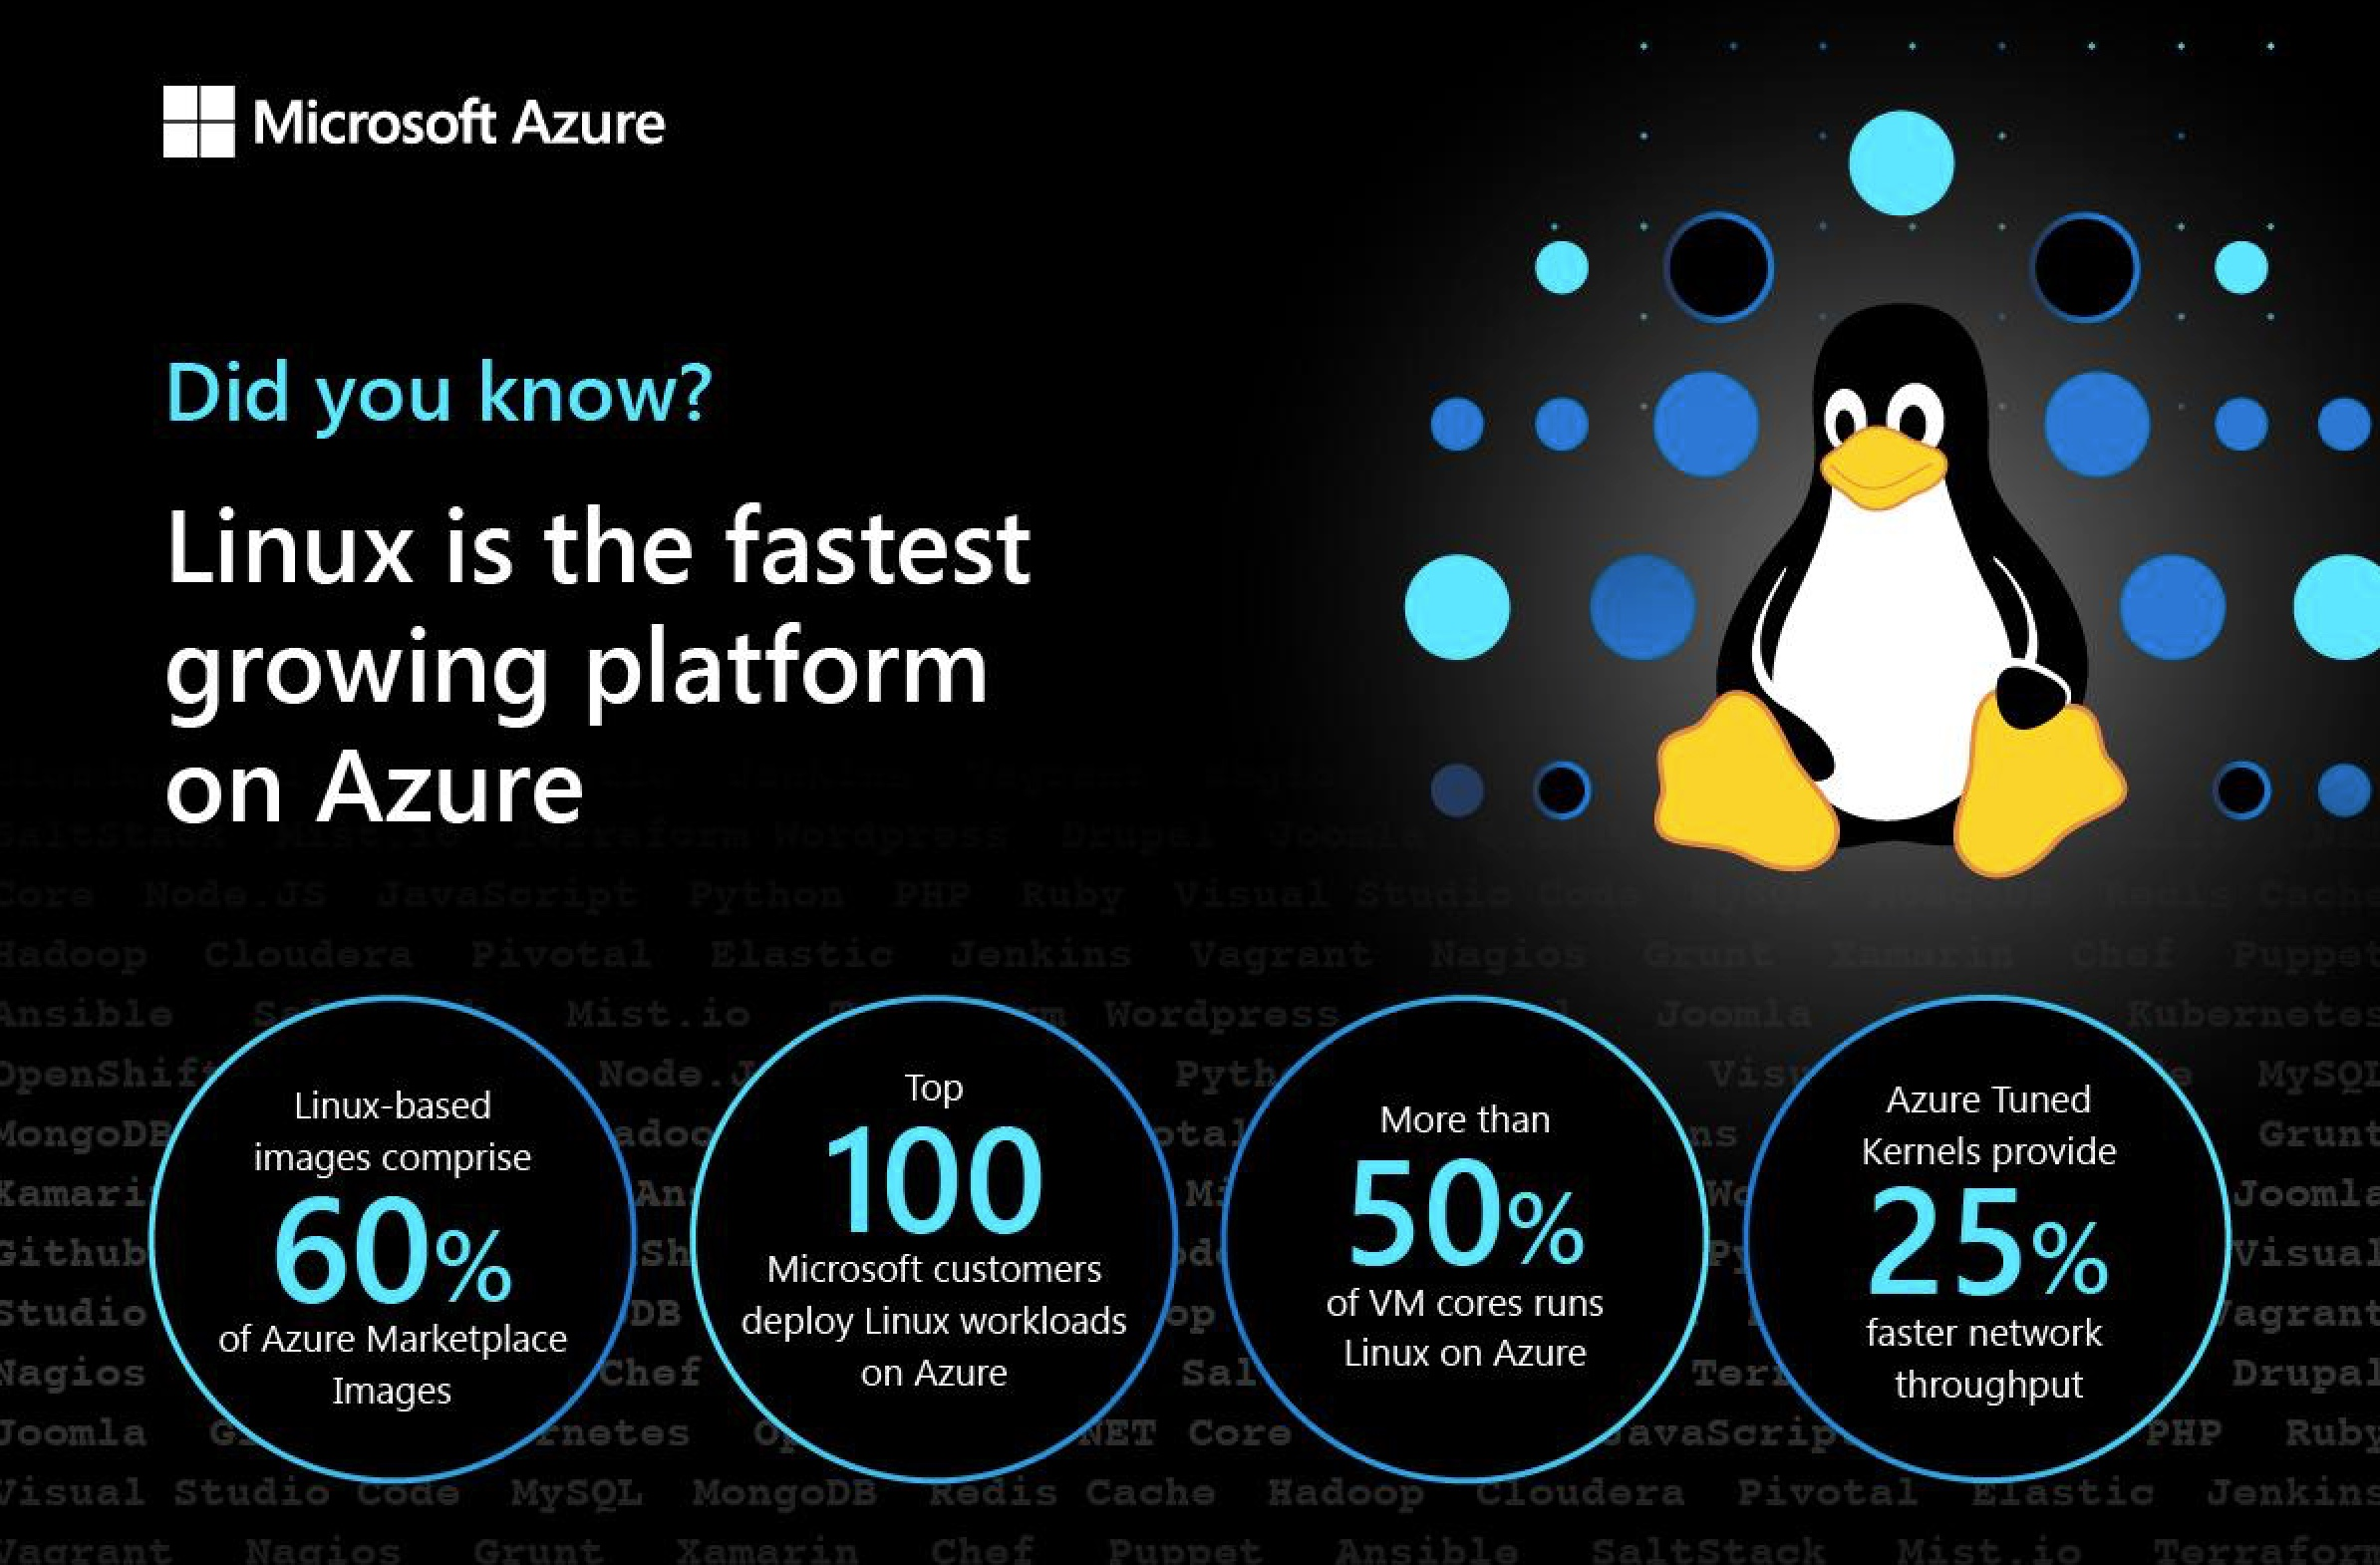 Linux Is Most Used OS In Microsoft Azure - Over 50 Percent Of VM Cores | Build5Nines